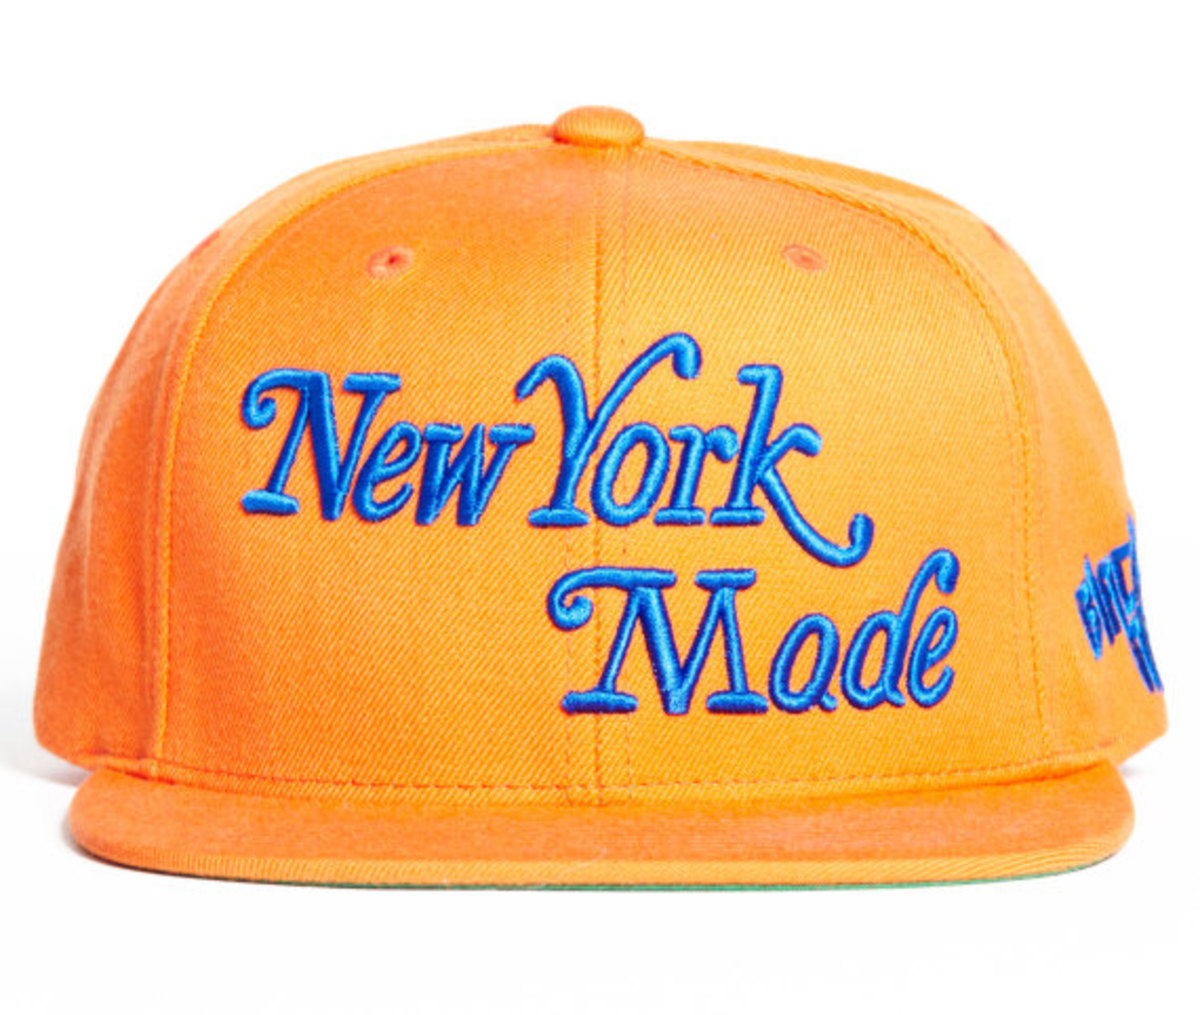 Public School: Black Apple x New York Knicks - Fall/Winter 2014 Capsule Collection - 12